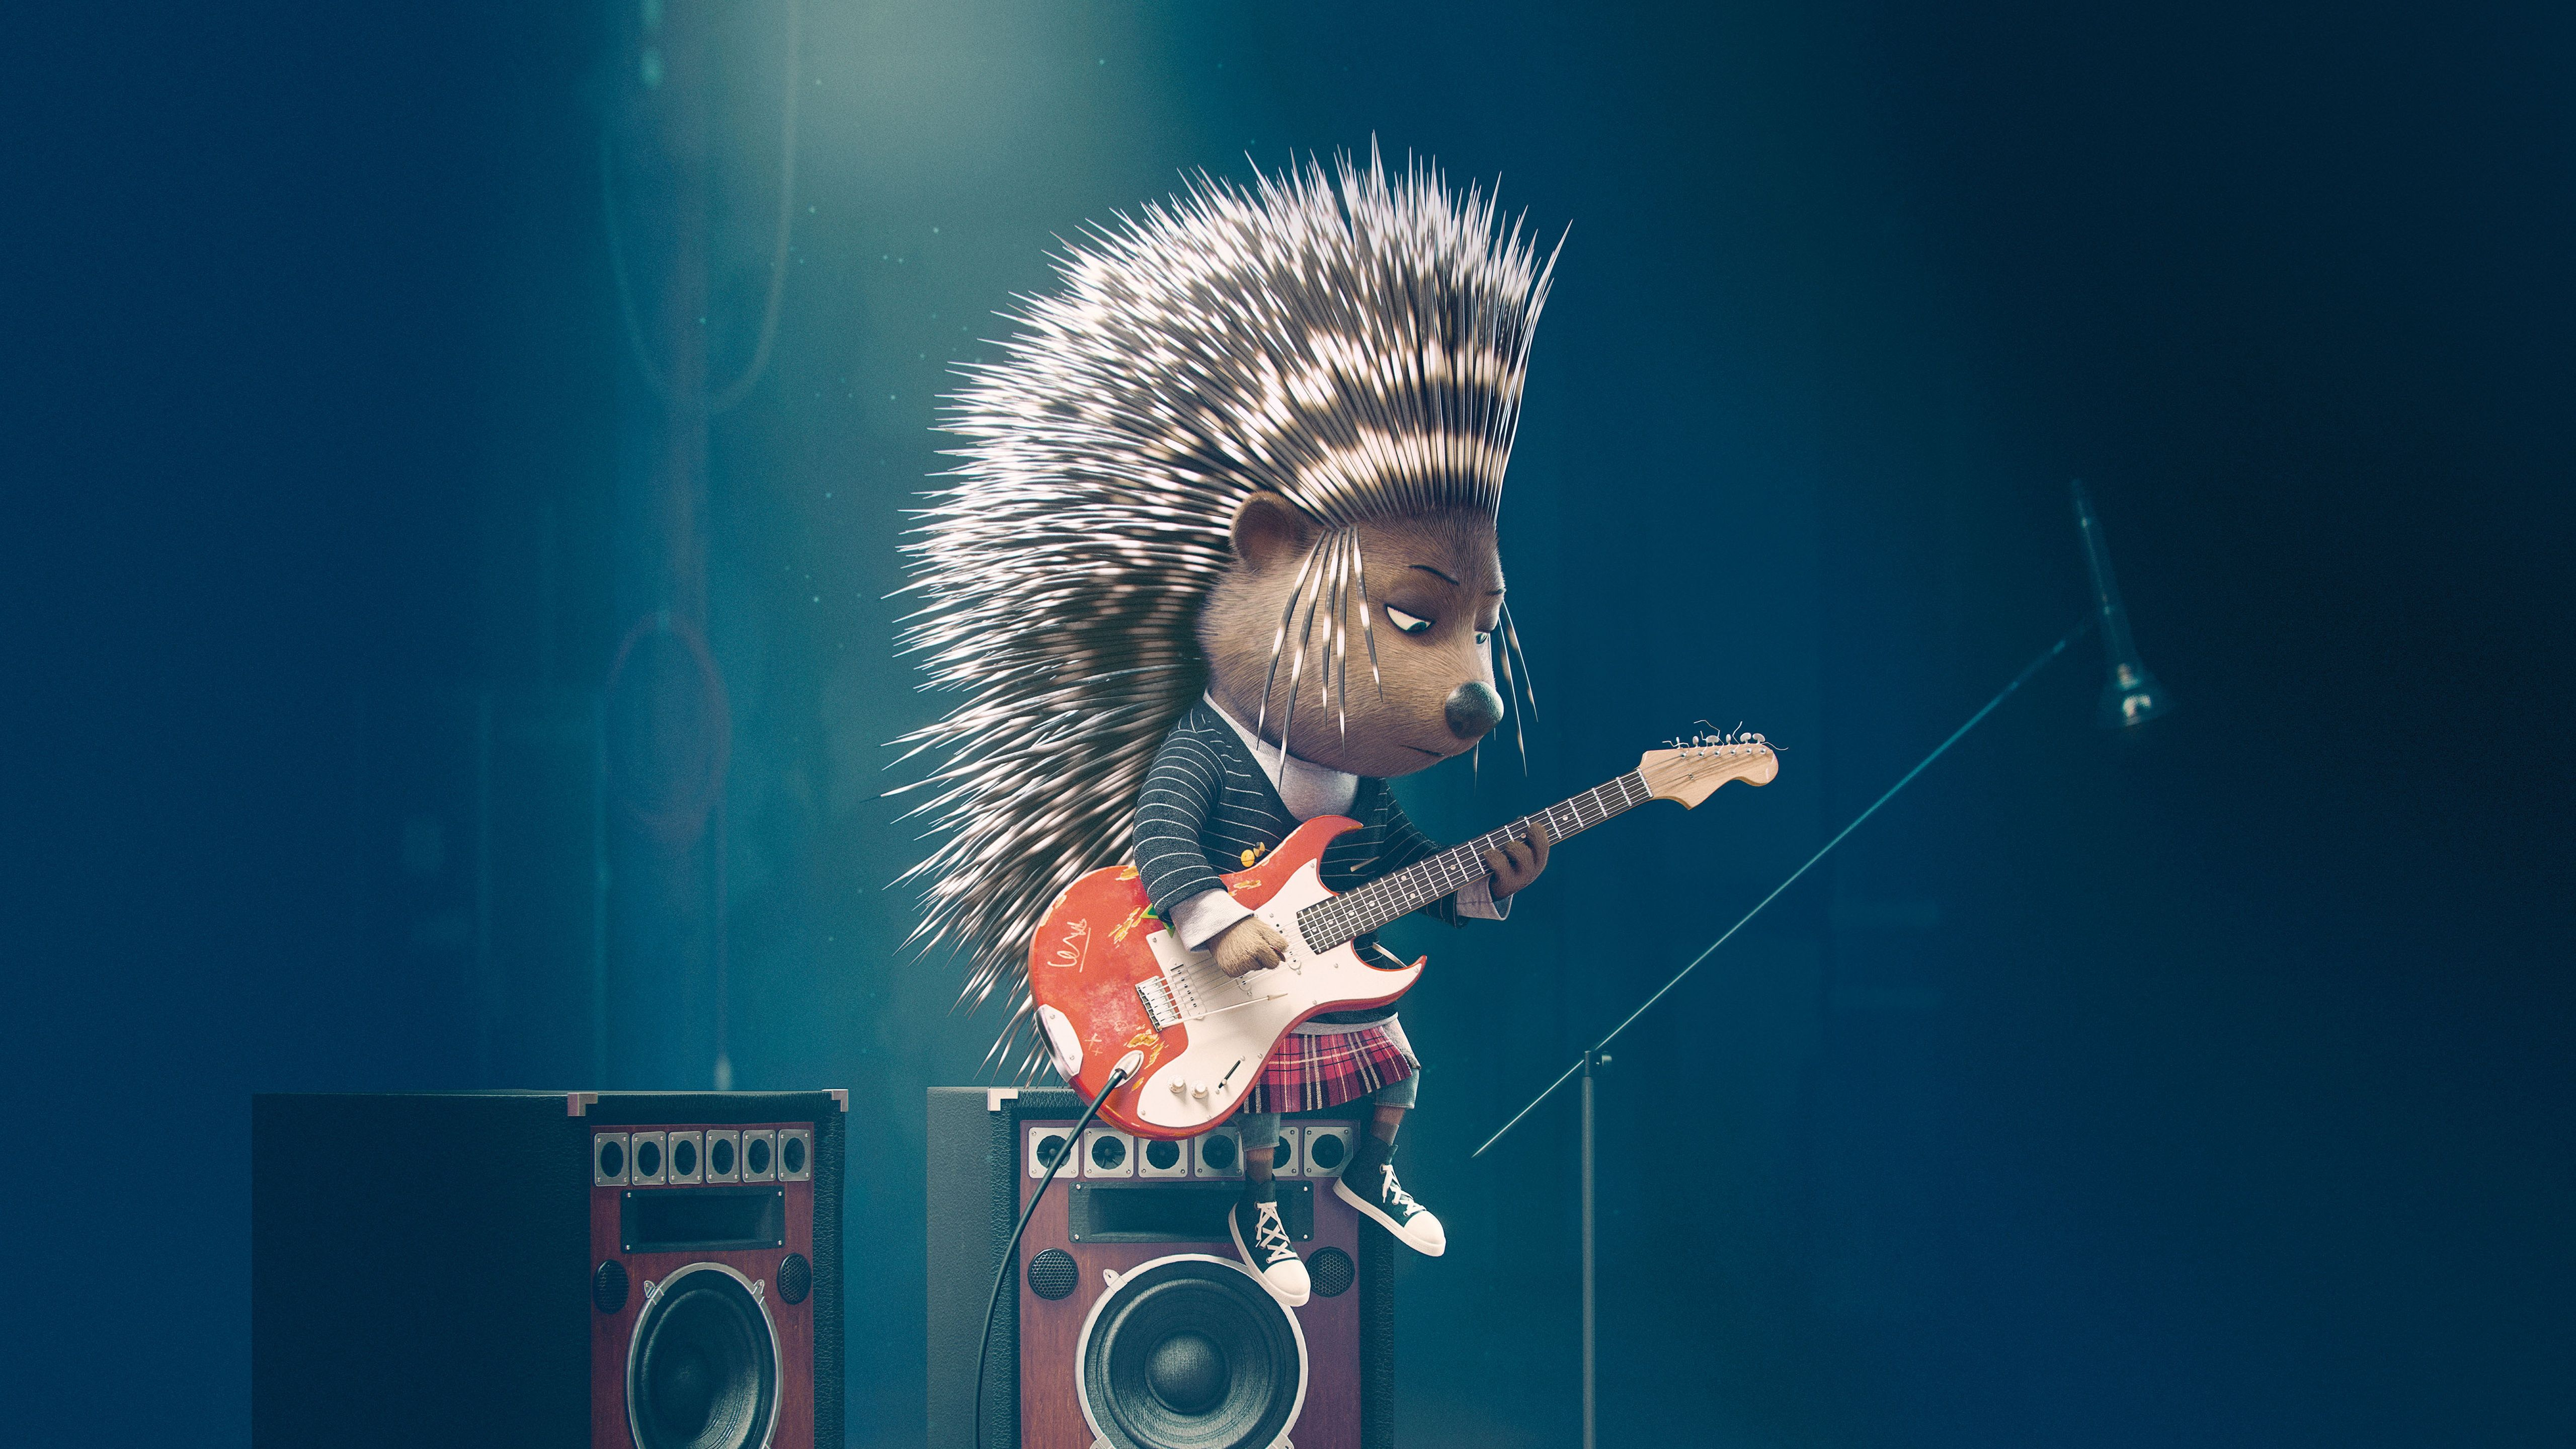 Download wallpapers 5120x2880 sing, ash, porcupine hd backgrounds